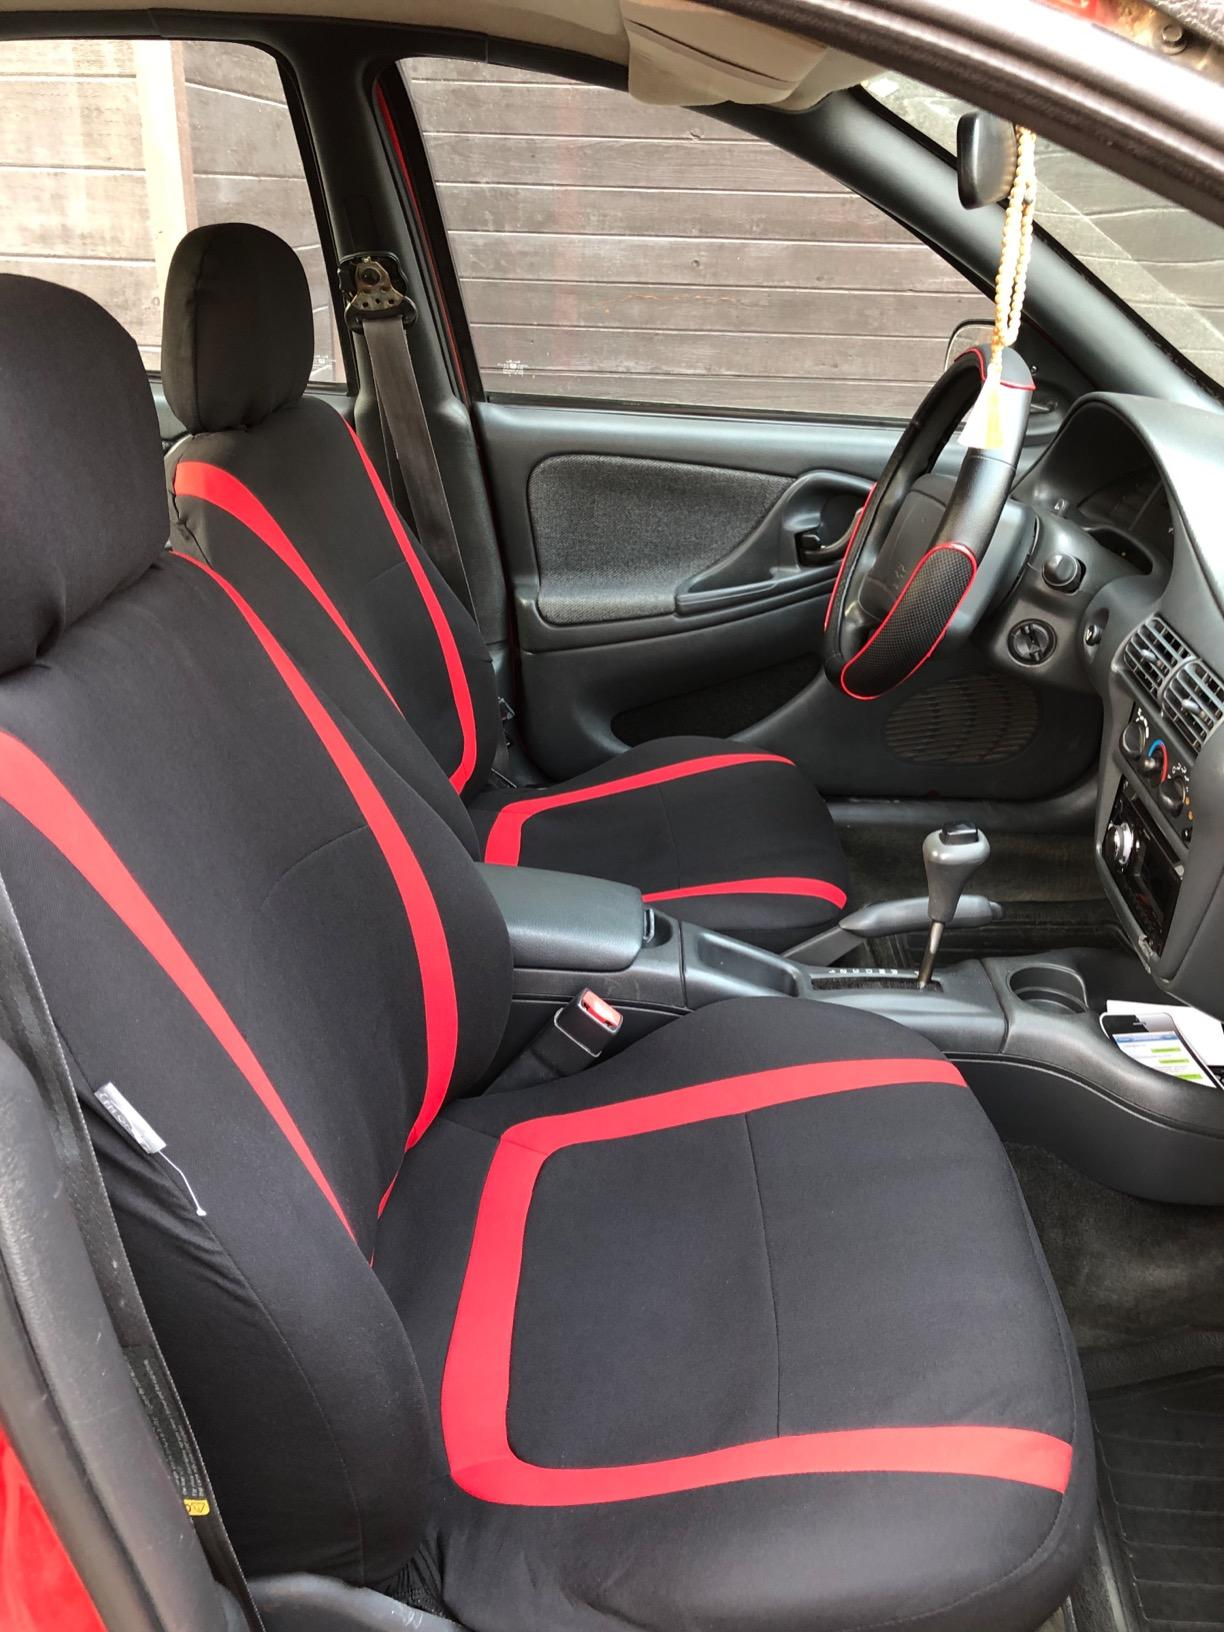 review-car-seat-covers